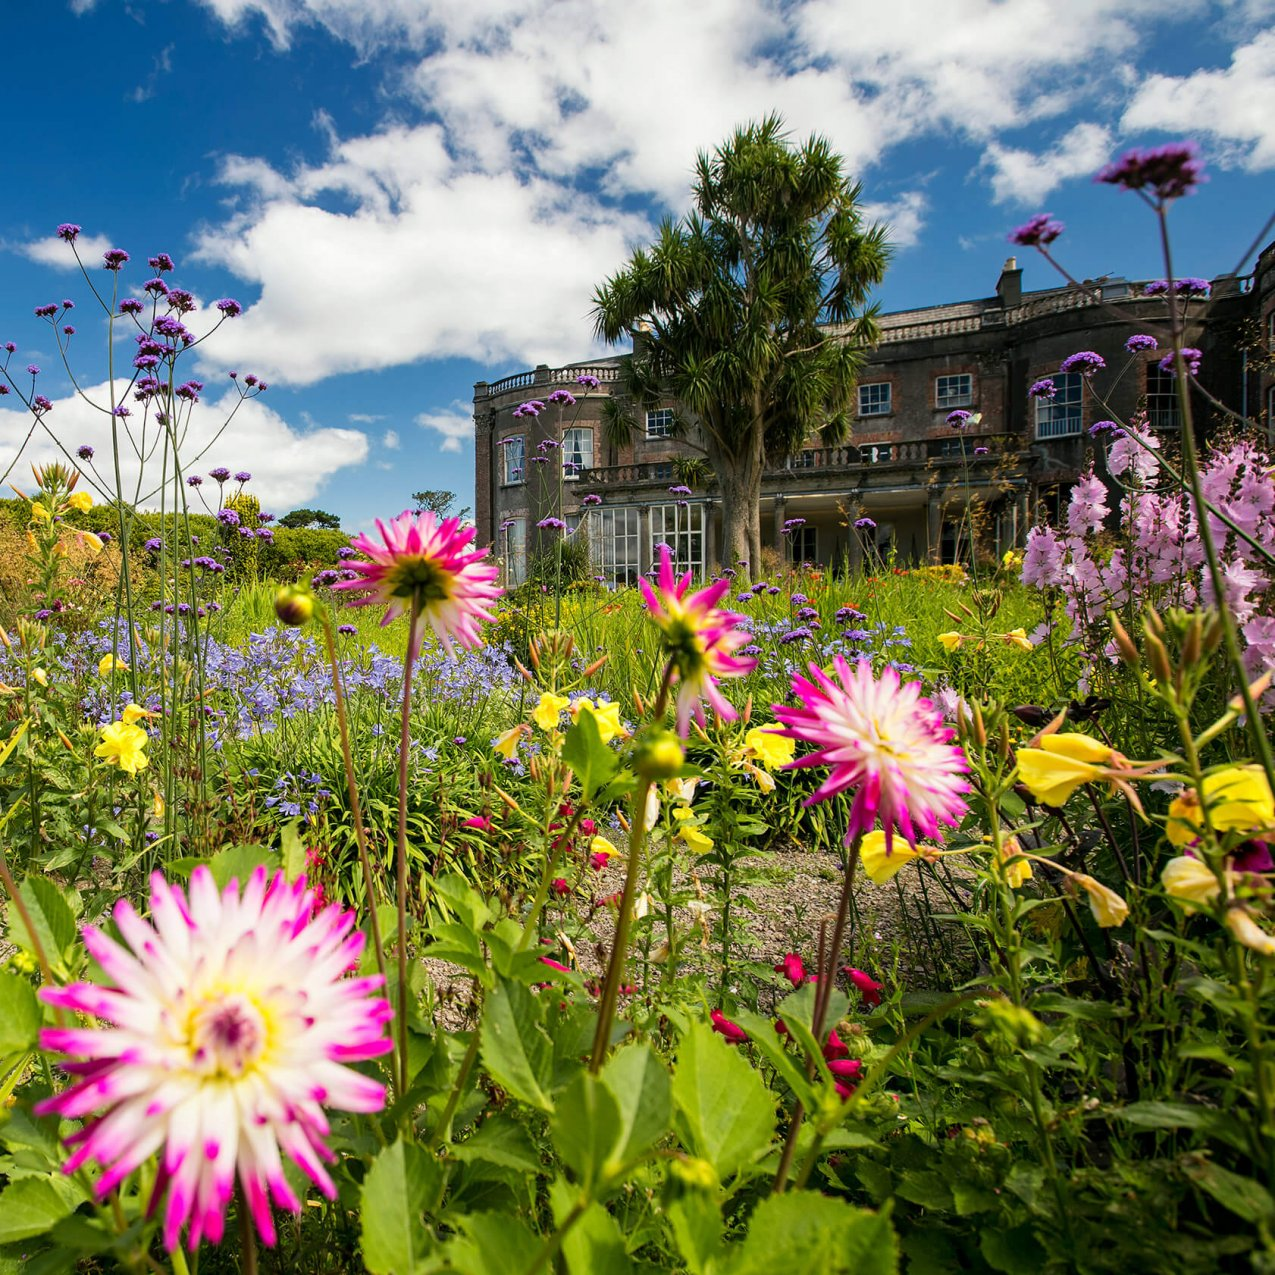 Colourful flowers in the gardens of Bantry House in Ireland